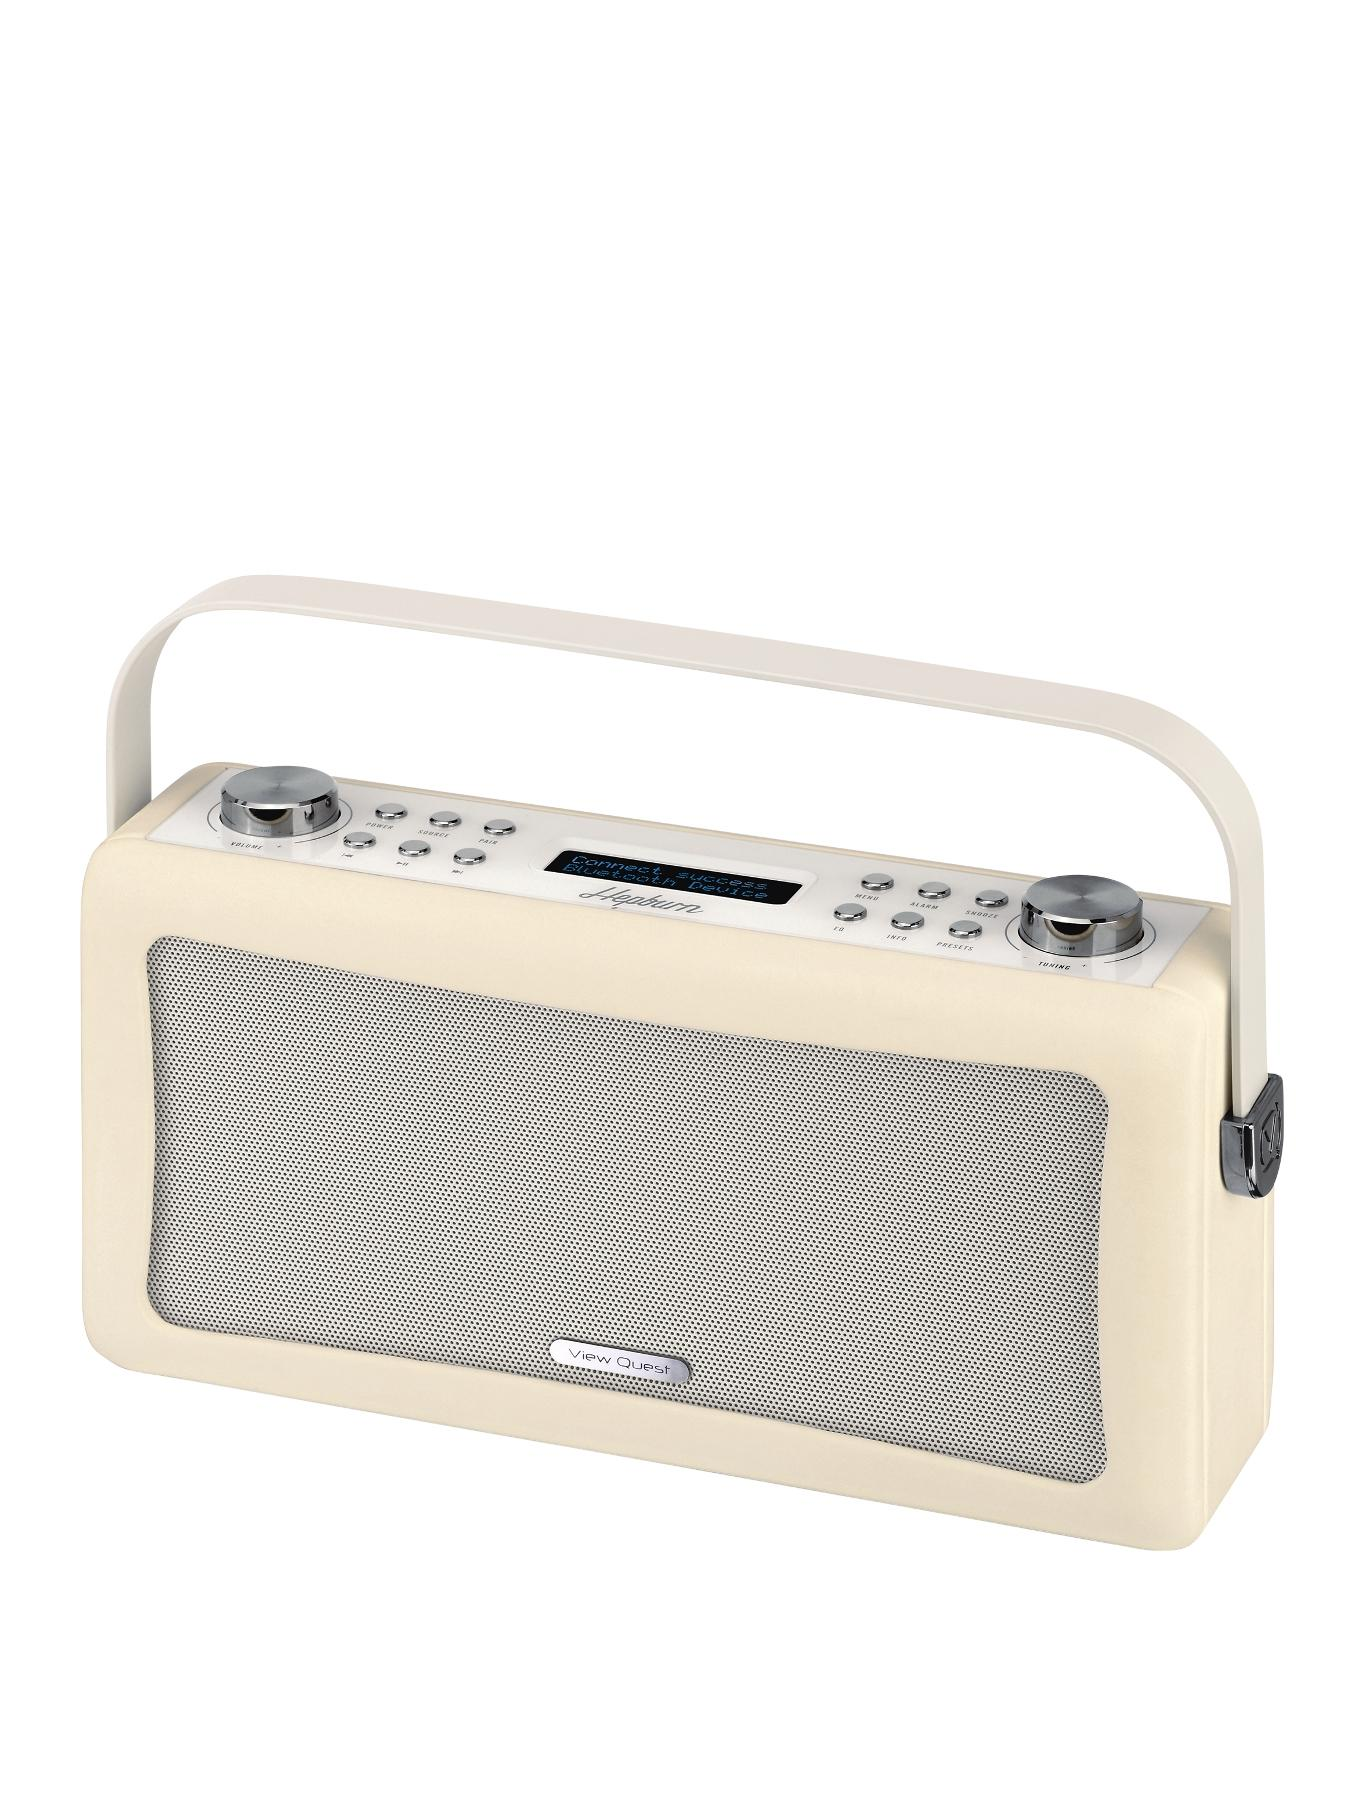 Hepburn Portable Bluetooth DAB Radio - Cream